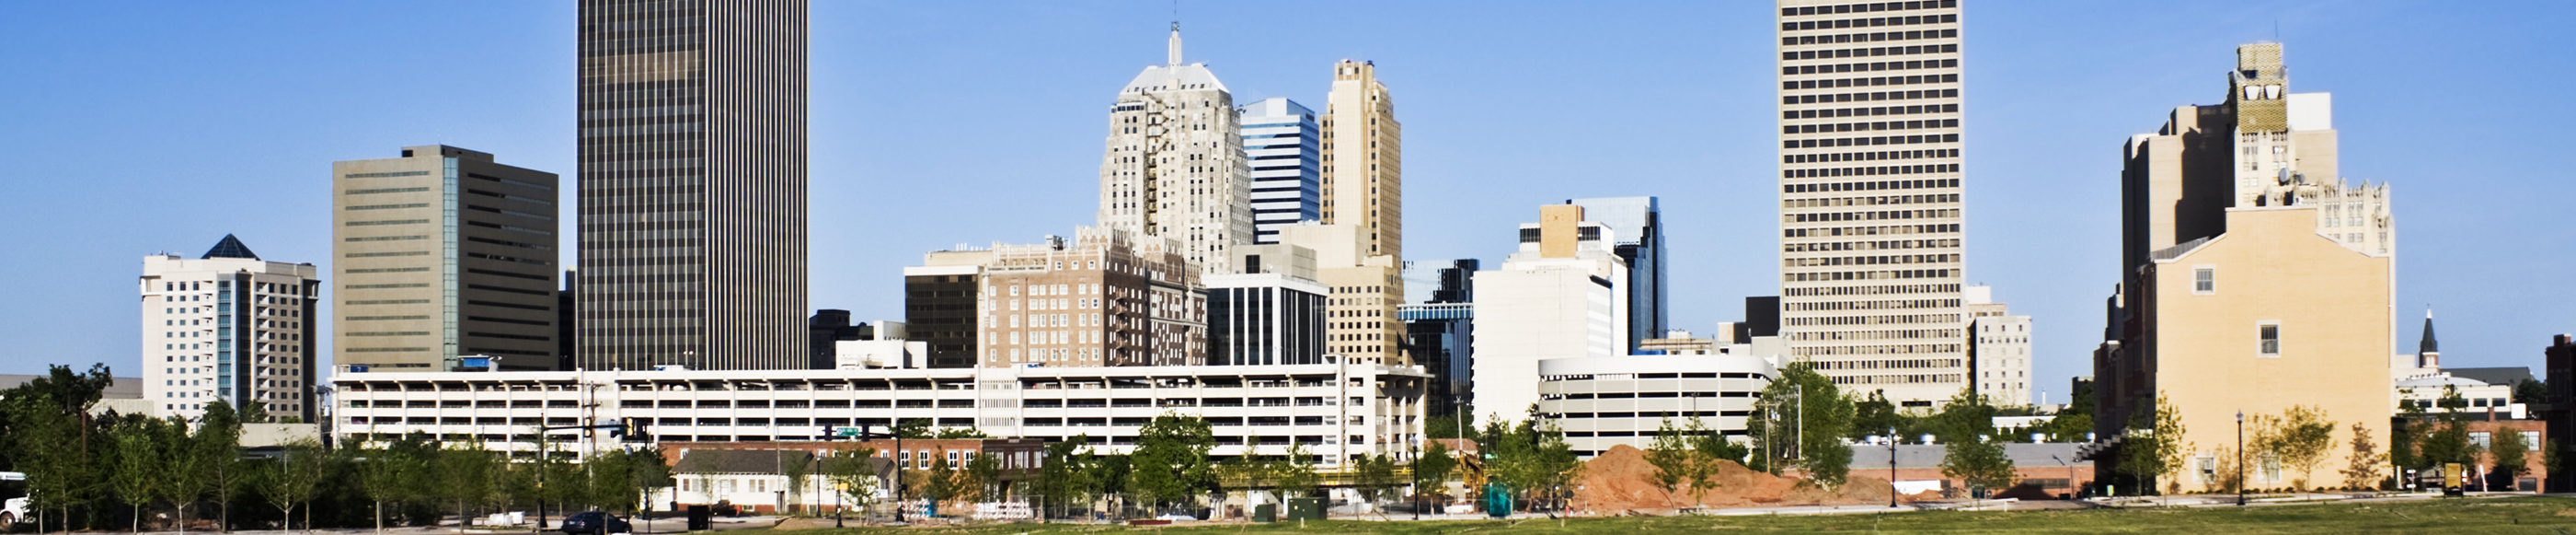 This is a skyline of downtown Oklahoma City where ASTA-USA offers professional translation services.